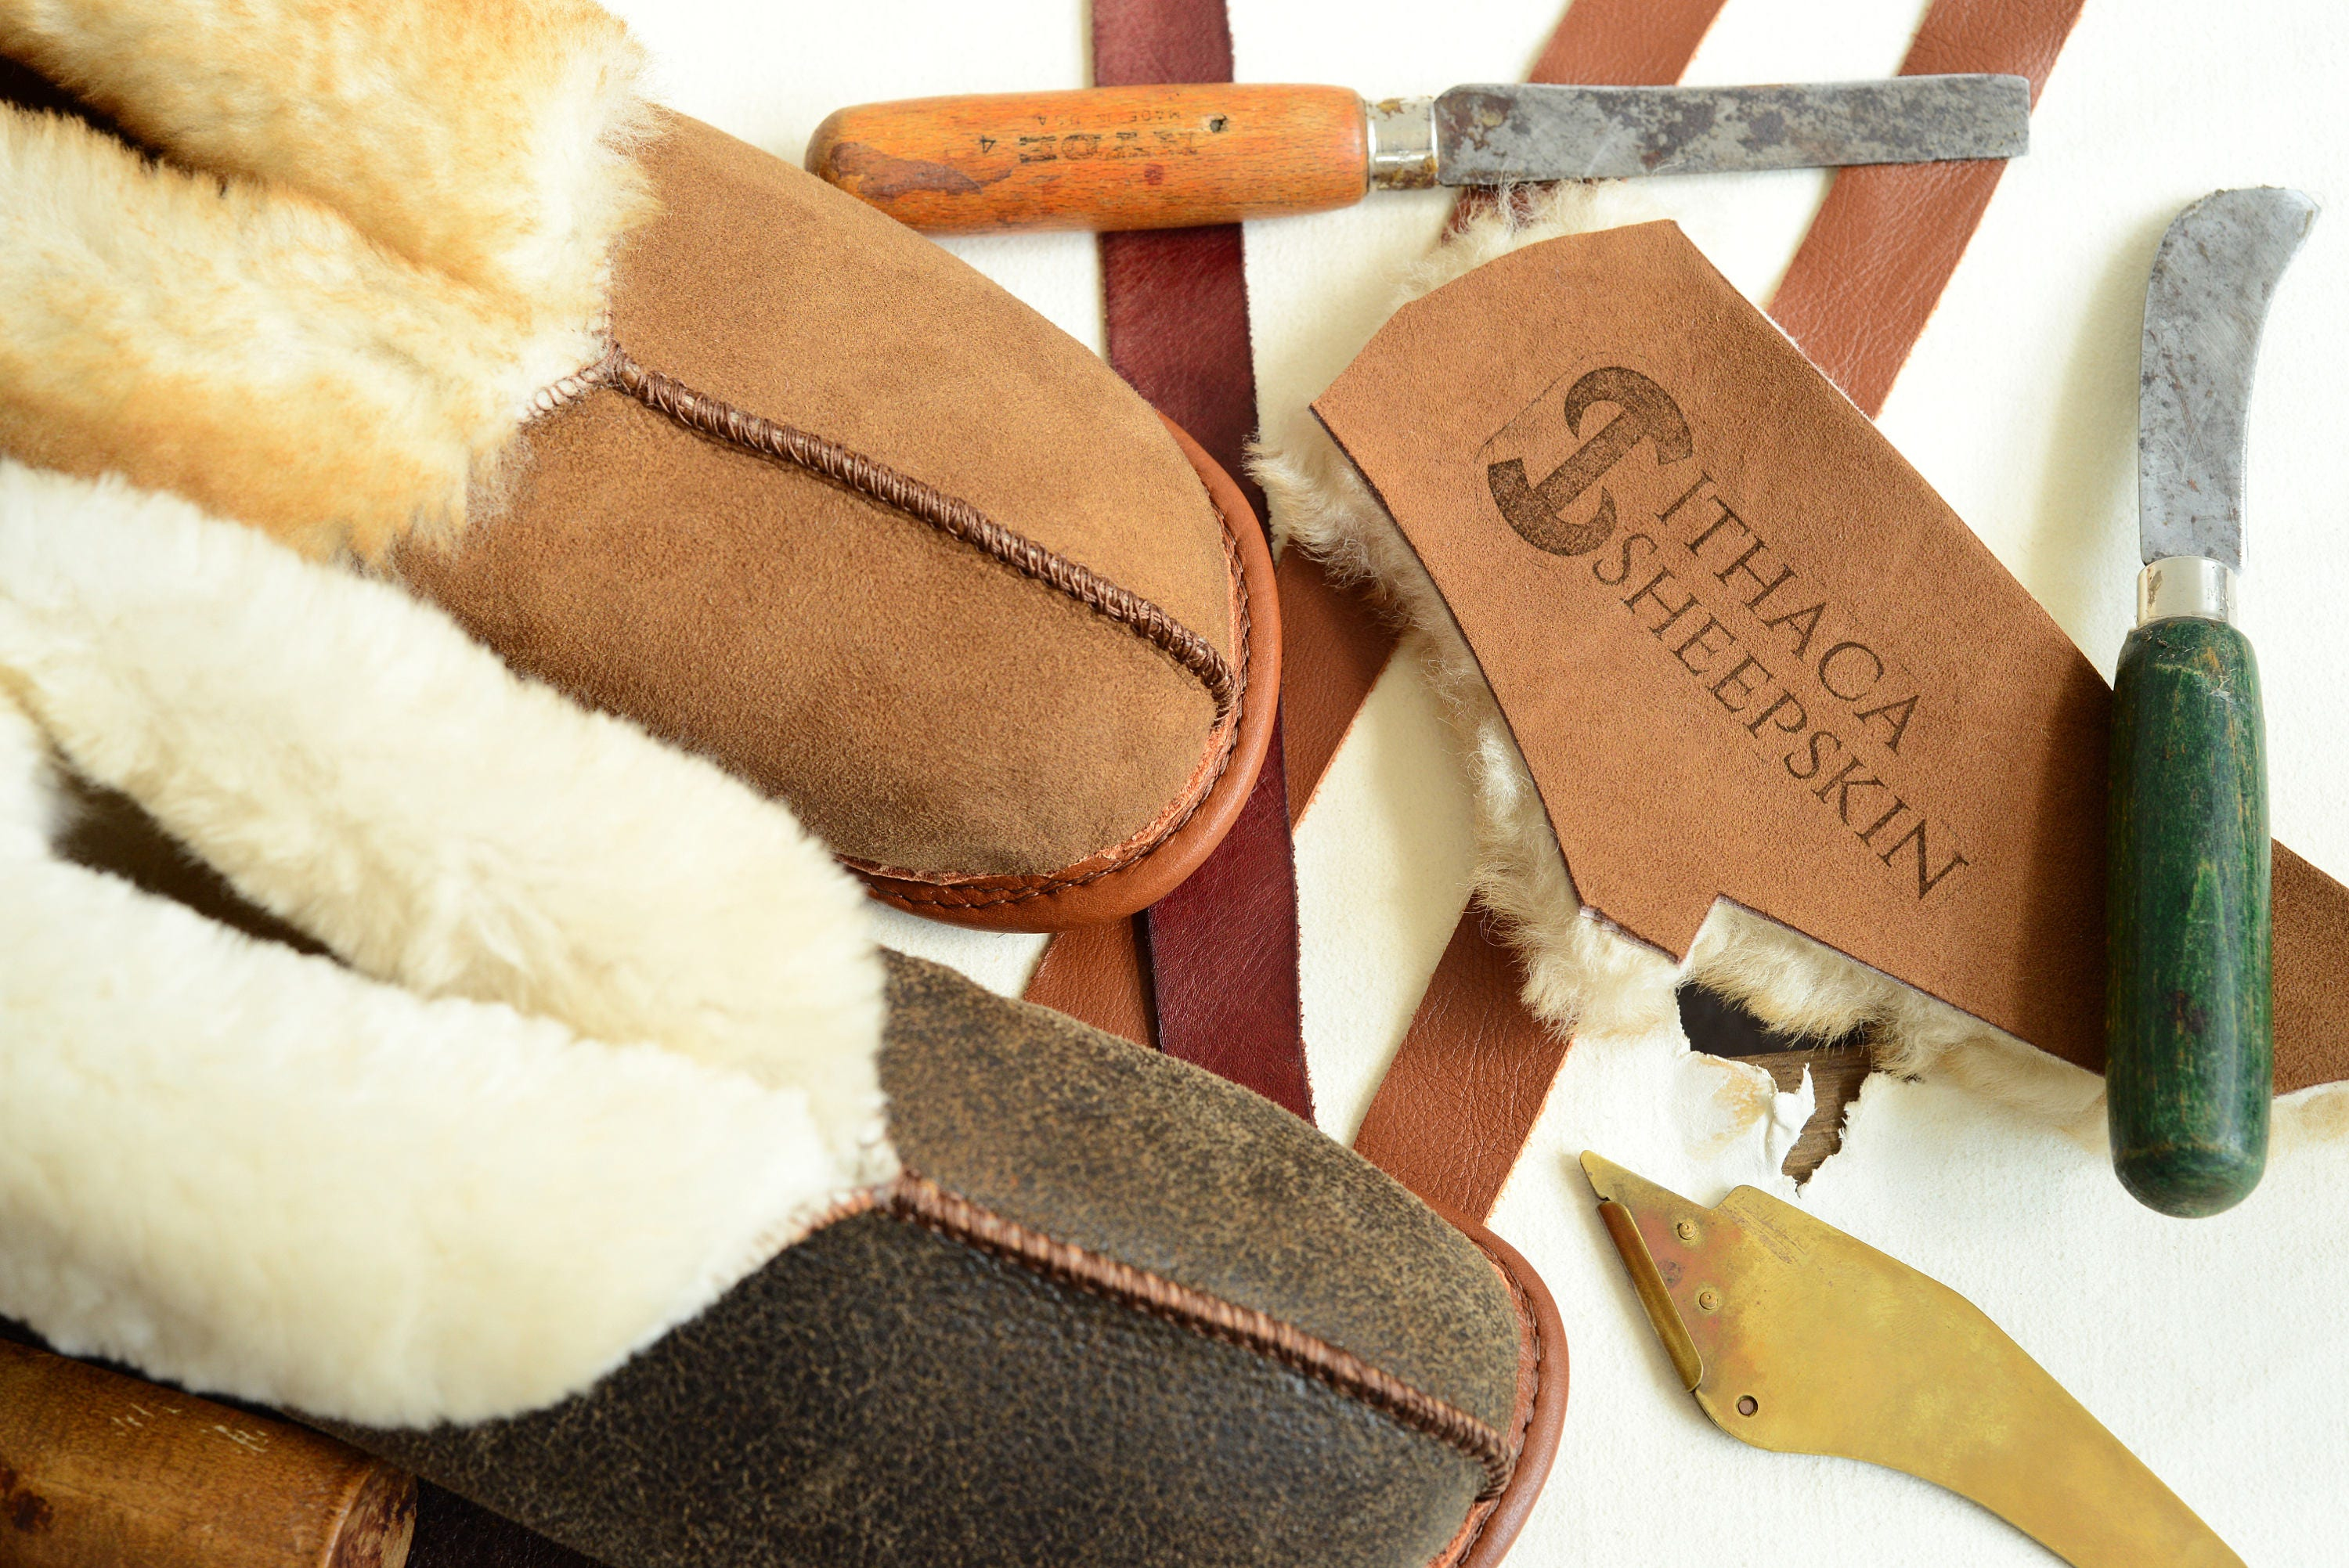 The Best Women's Sheepskin Slippers - Shoes Shearling Booties Fur House Shoes - Leather Wool Suede fe817a